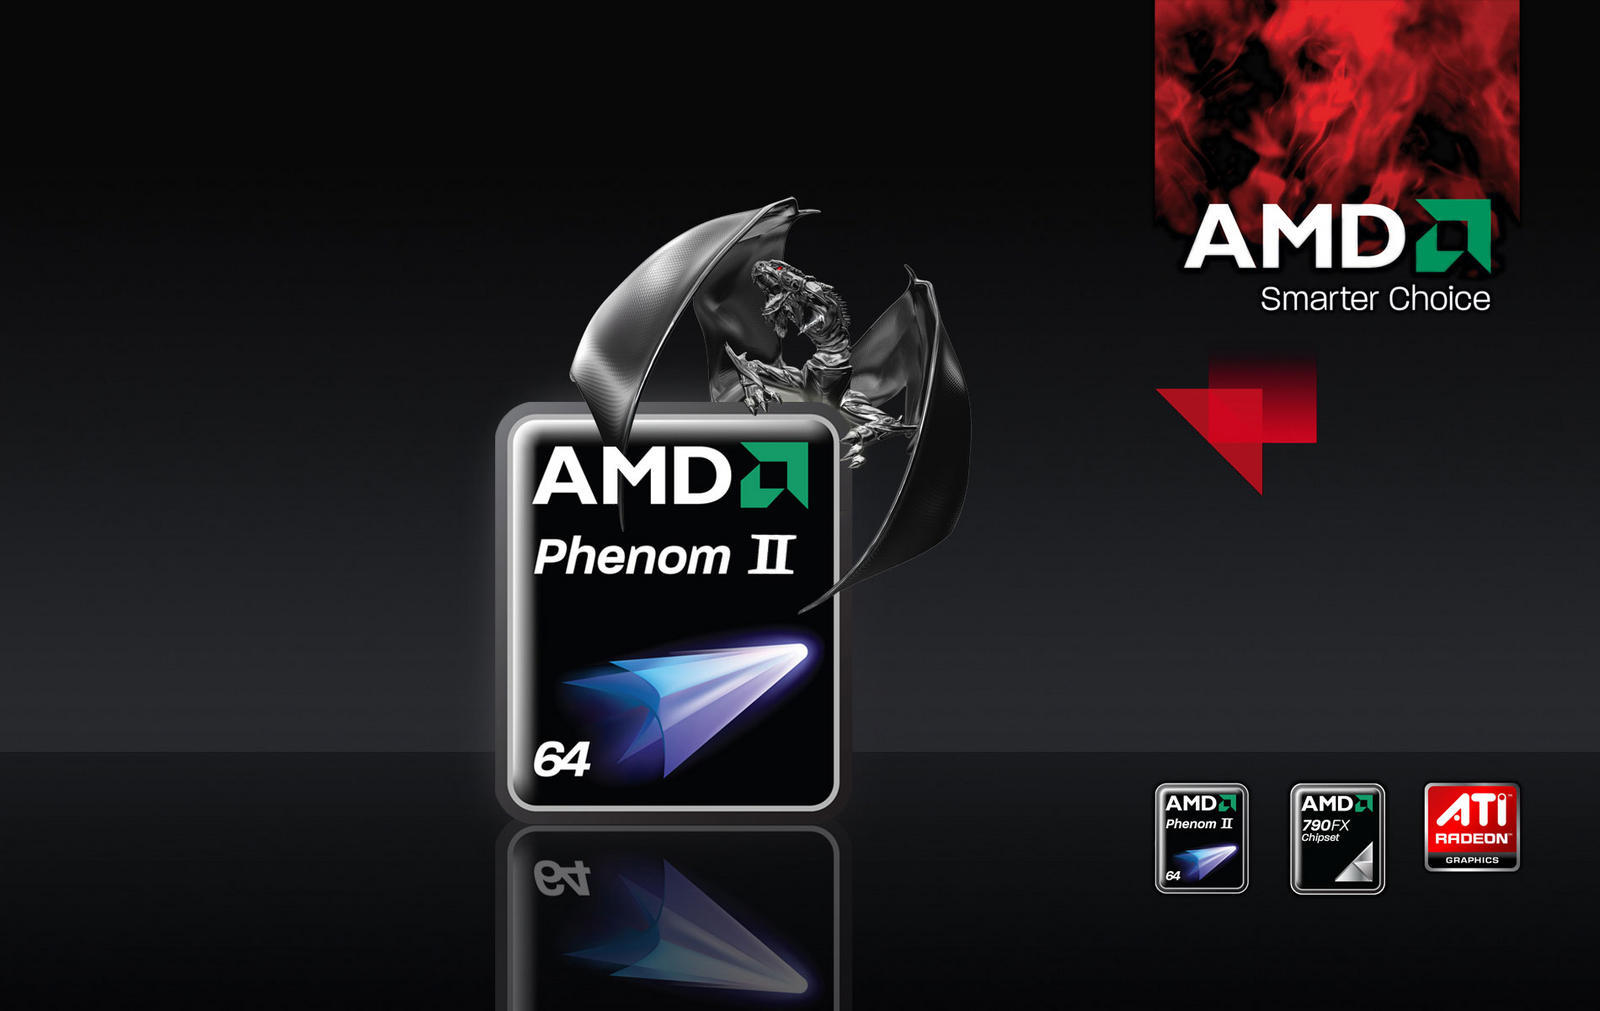 amd computer HD Wallpaper